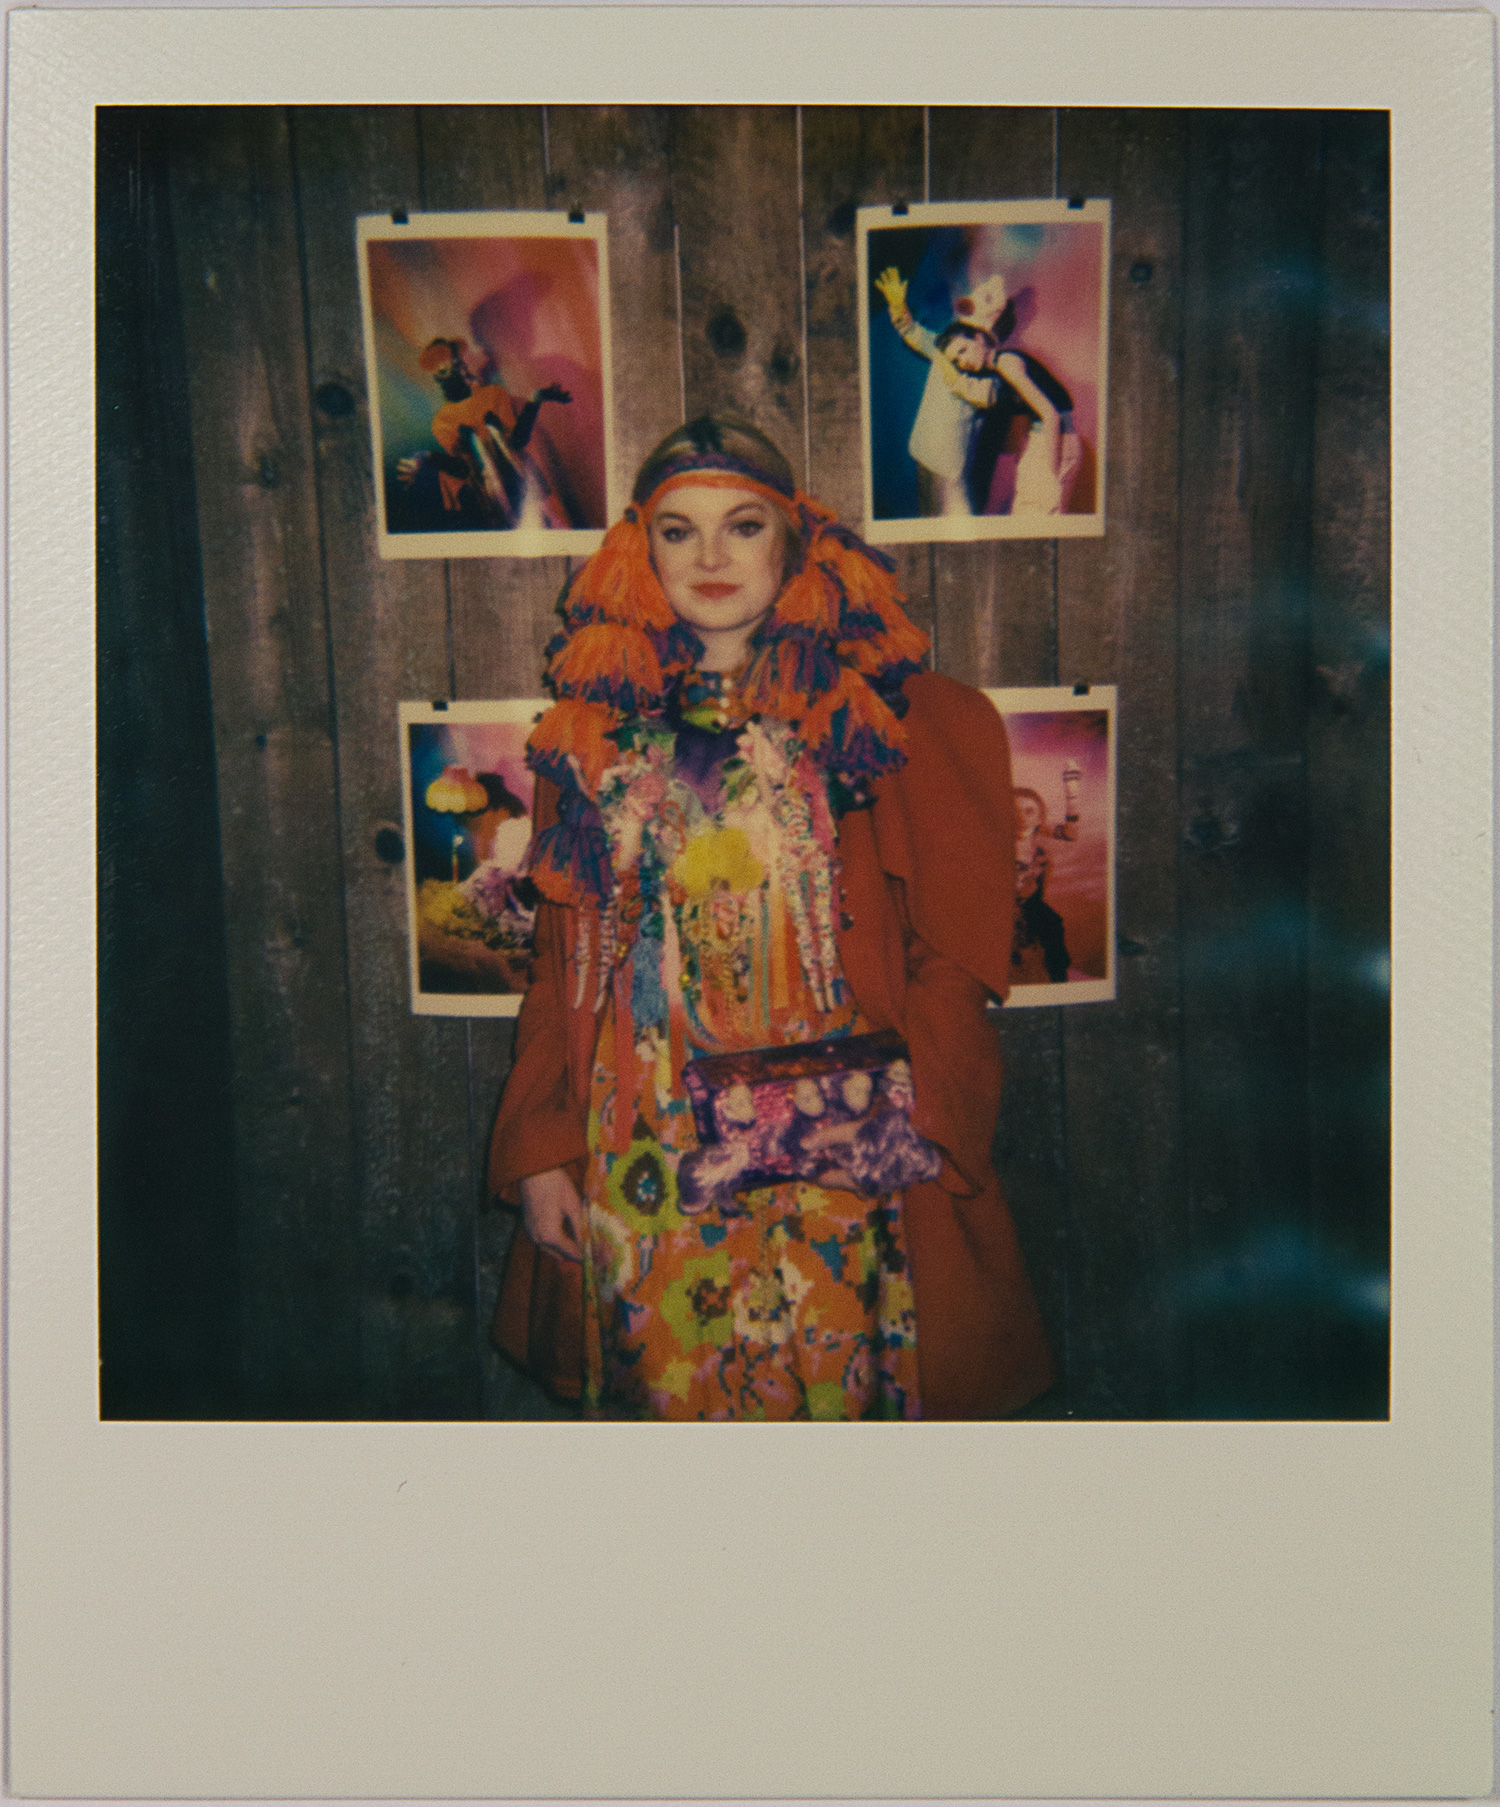 PYLOT ISSUE 04 LAUNCH PARTY IMPOSSIBLE PROJECT 09